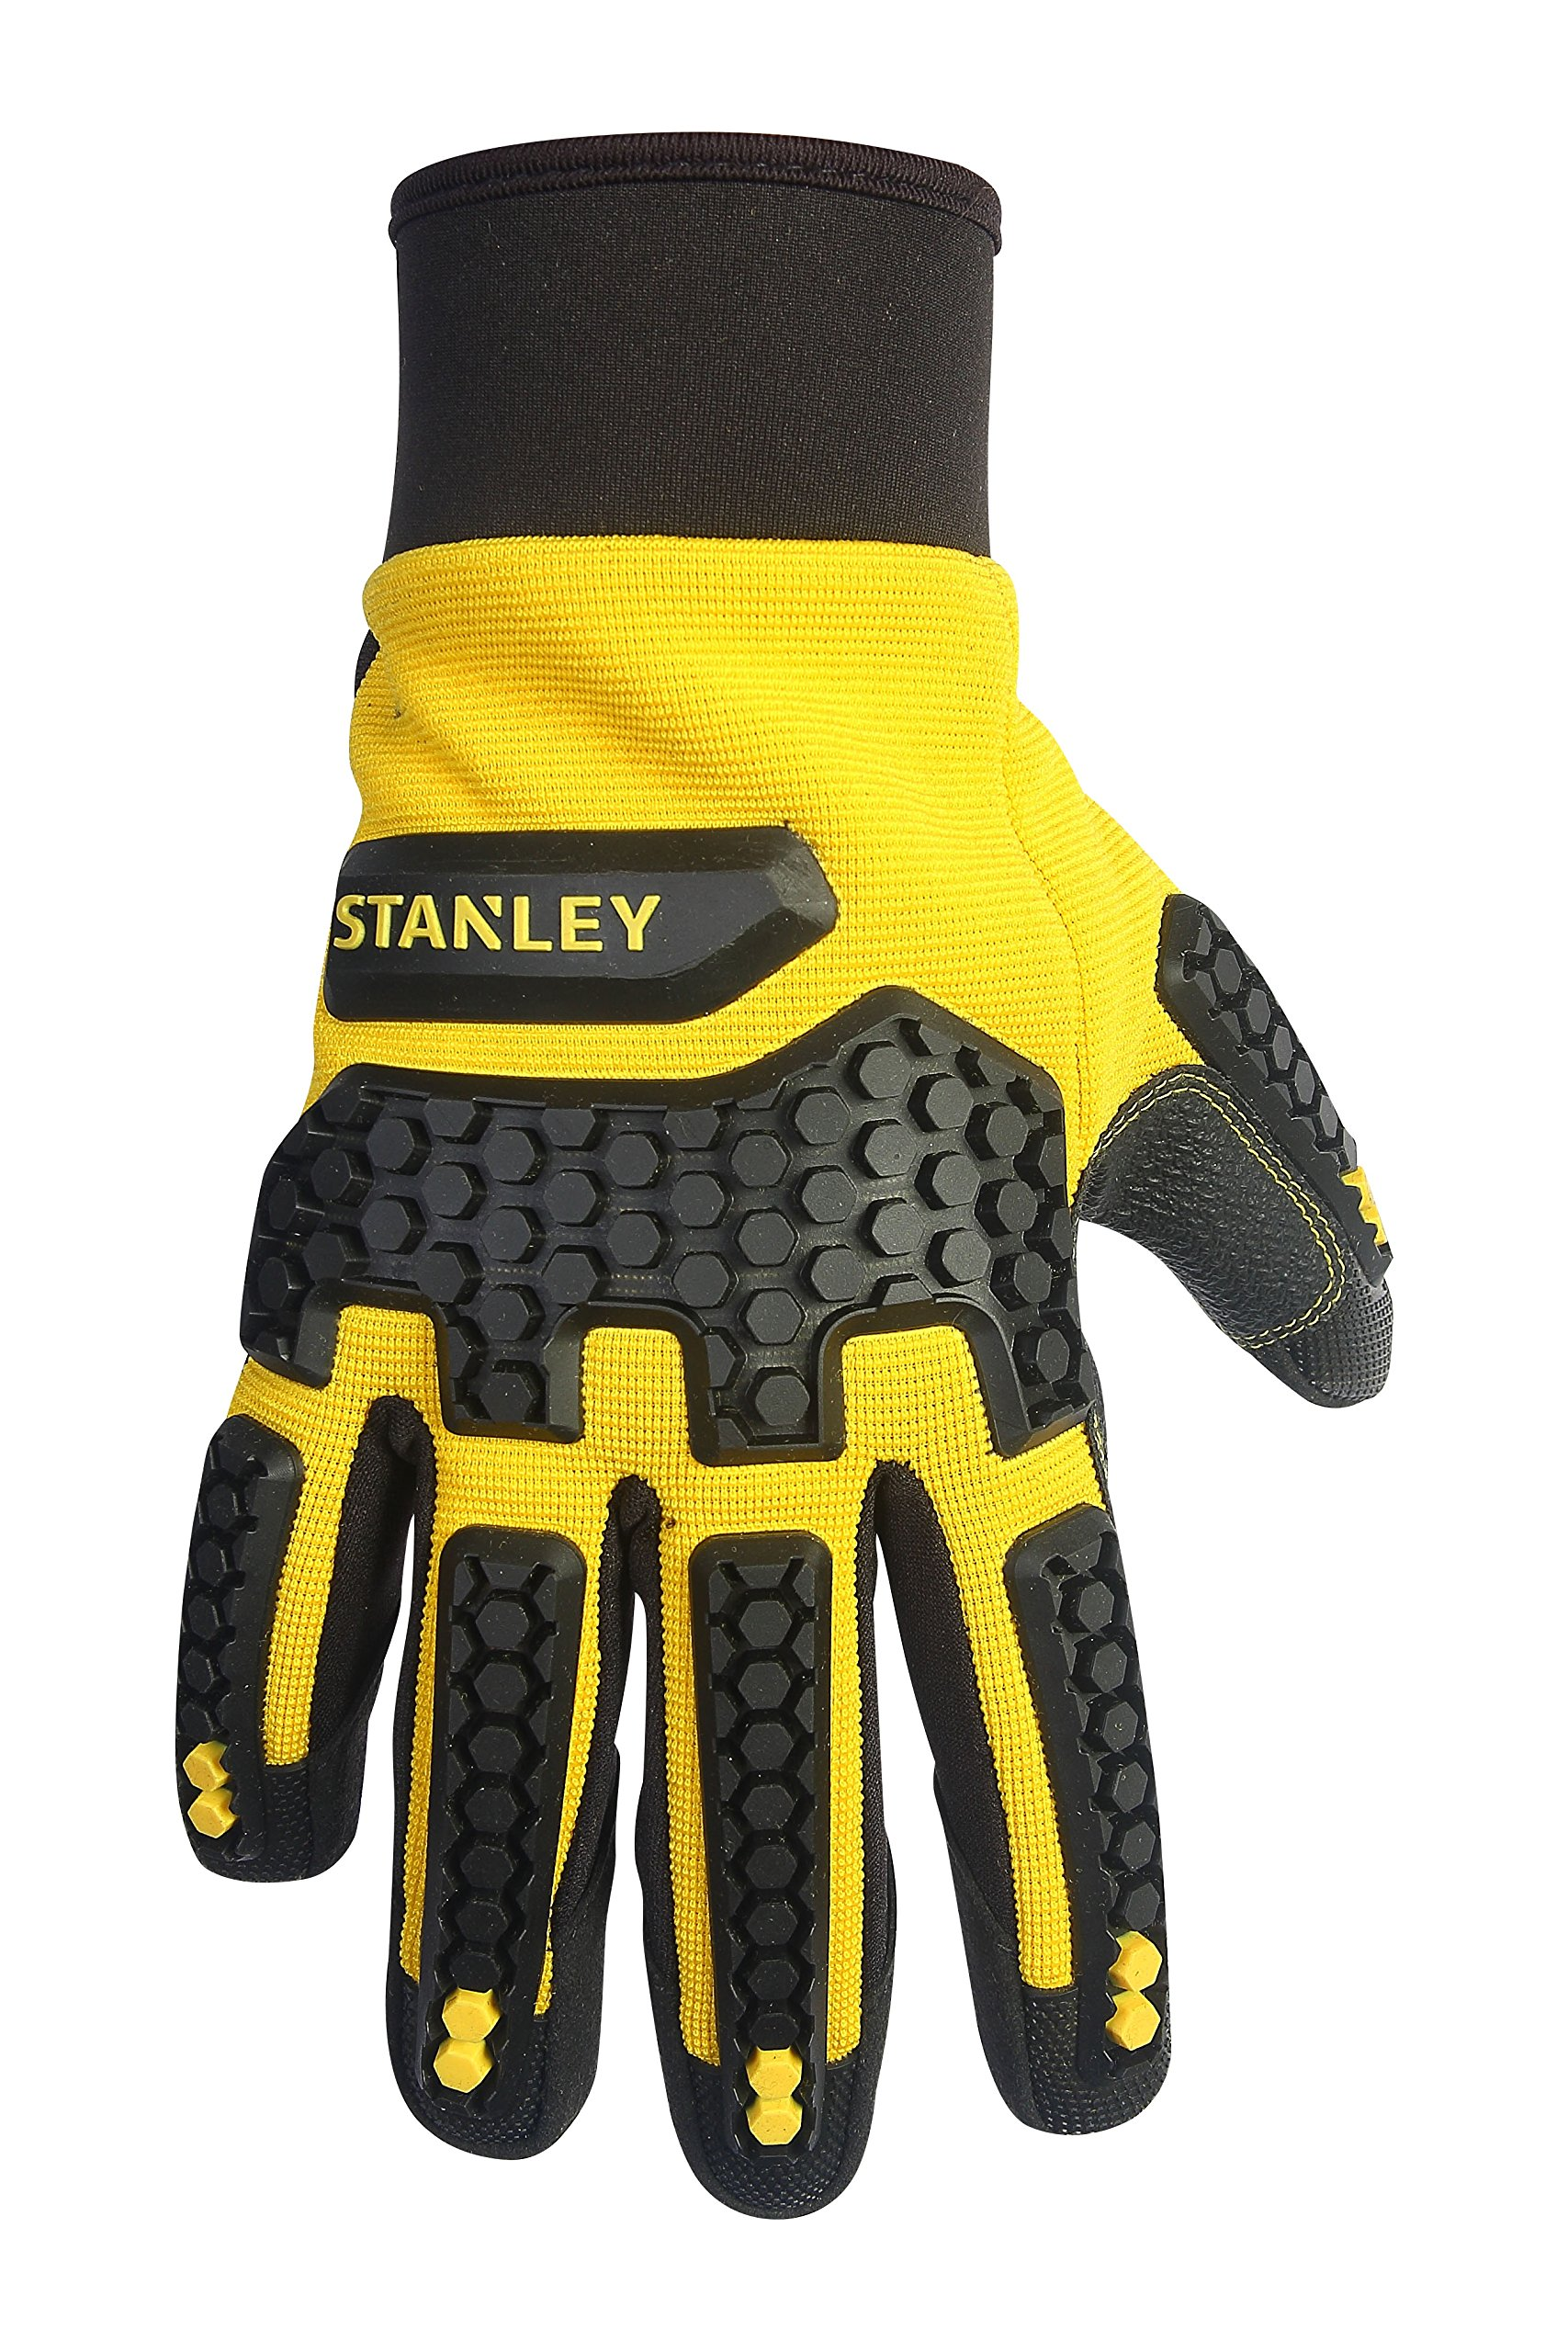 Stanley Synthetic Leather Impact Pro by Stanley (Image #3)